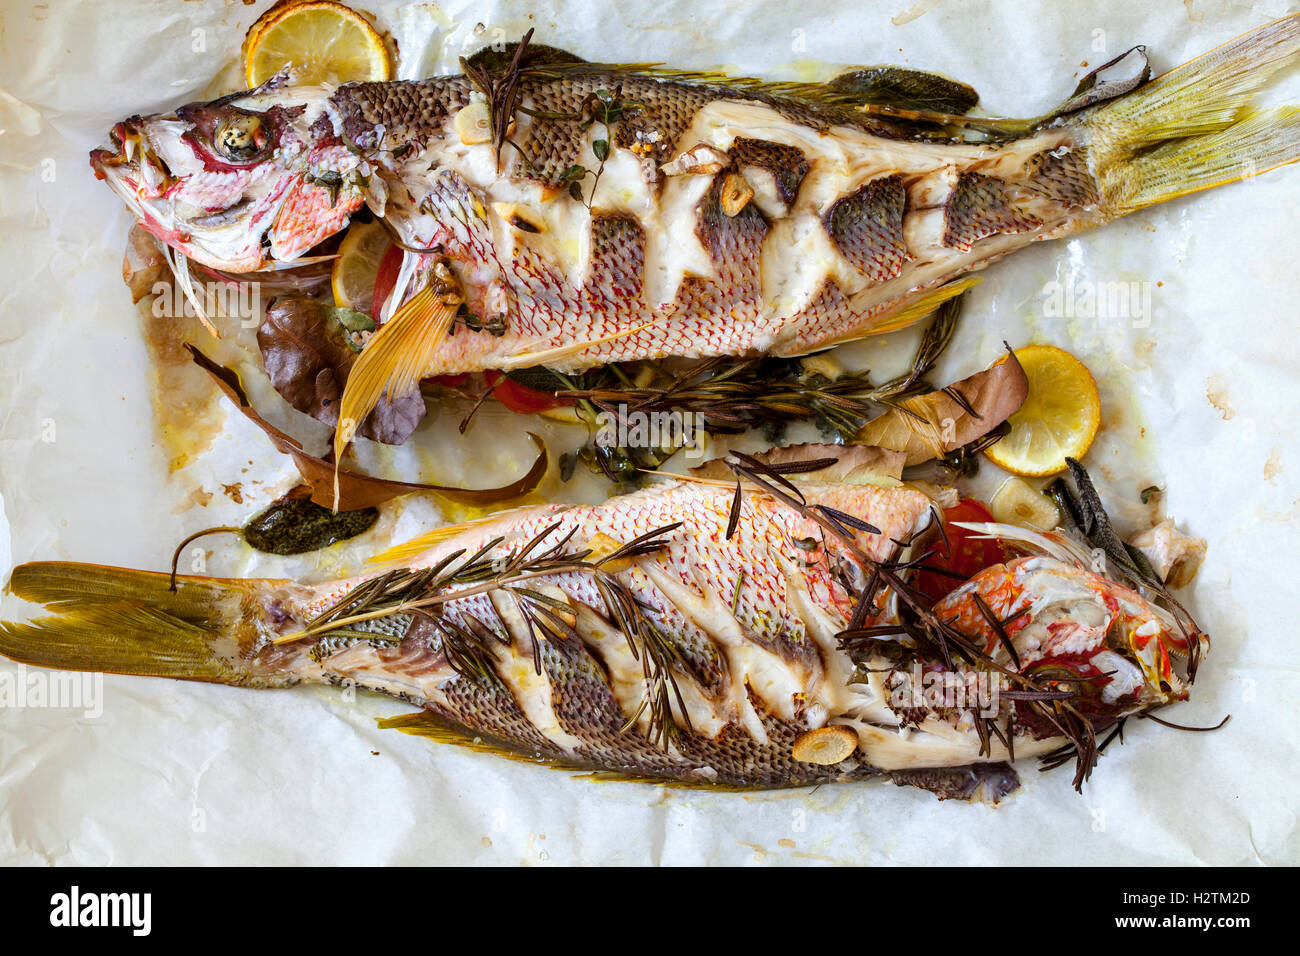 Roast red snappers with lemon, rosemary and garlic - Stock Image